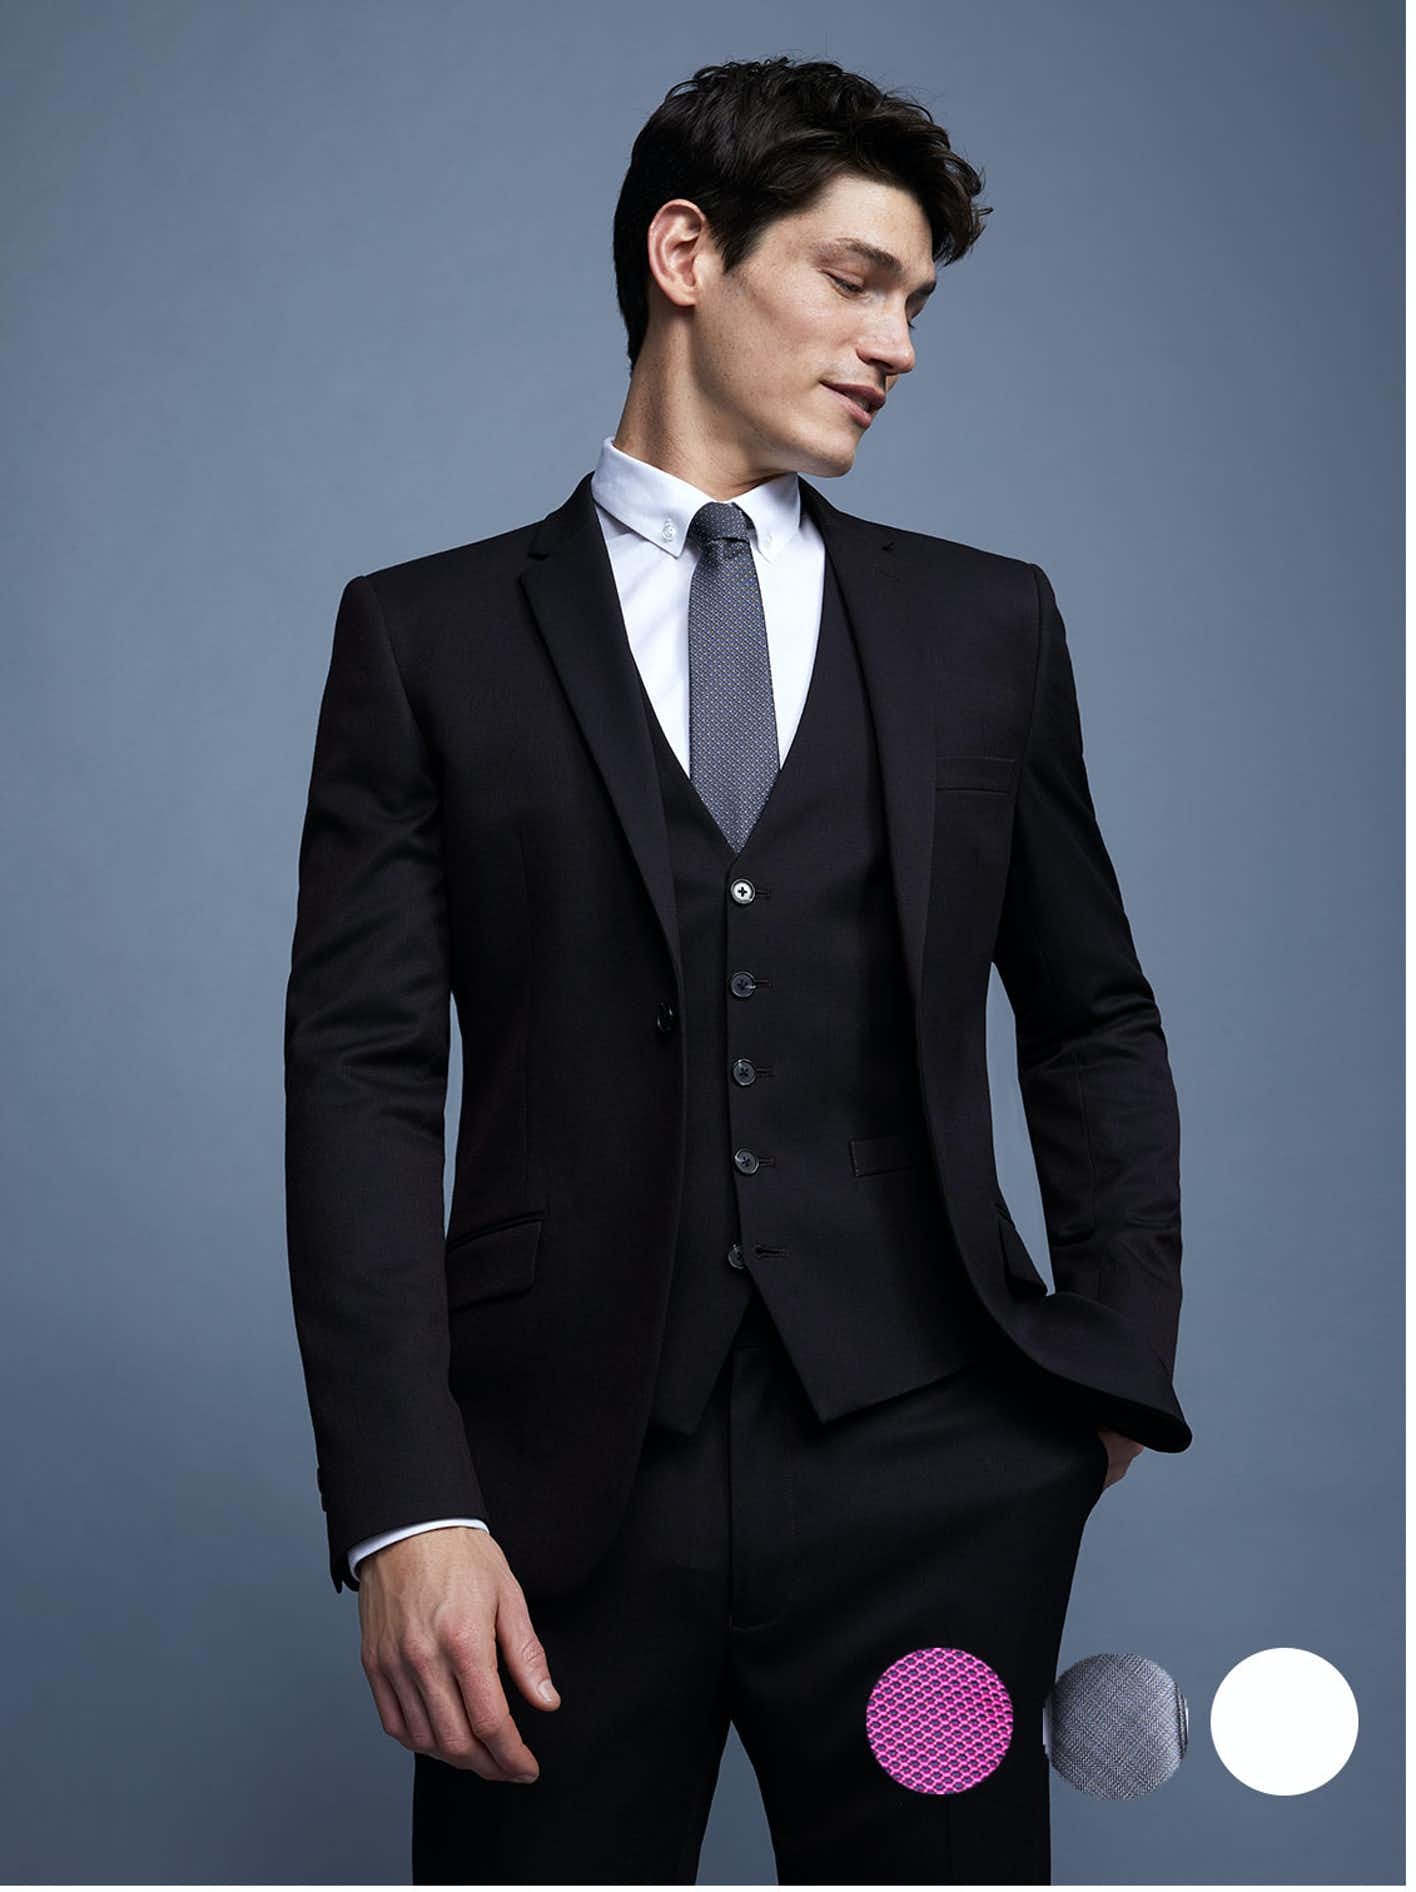 Shirt And Tie Combinations For A Dark Grey Pinstripe Suit